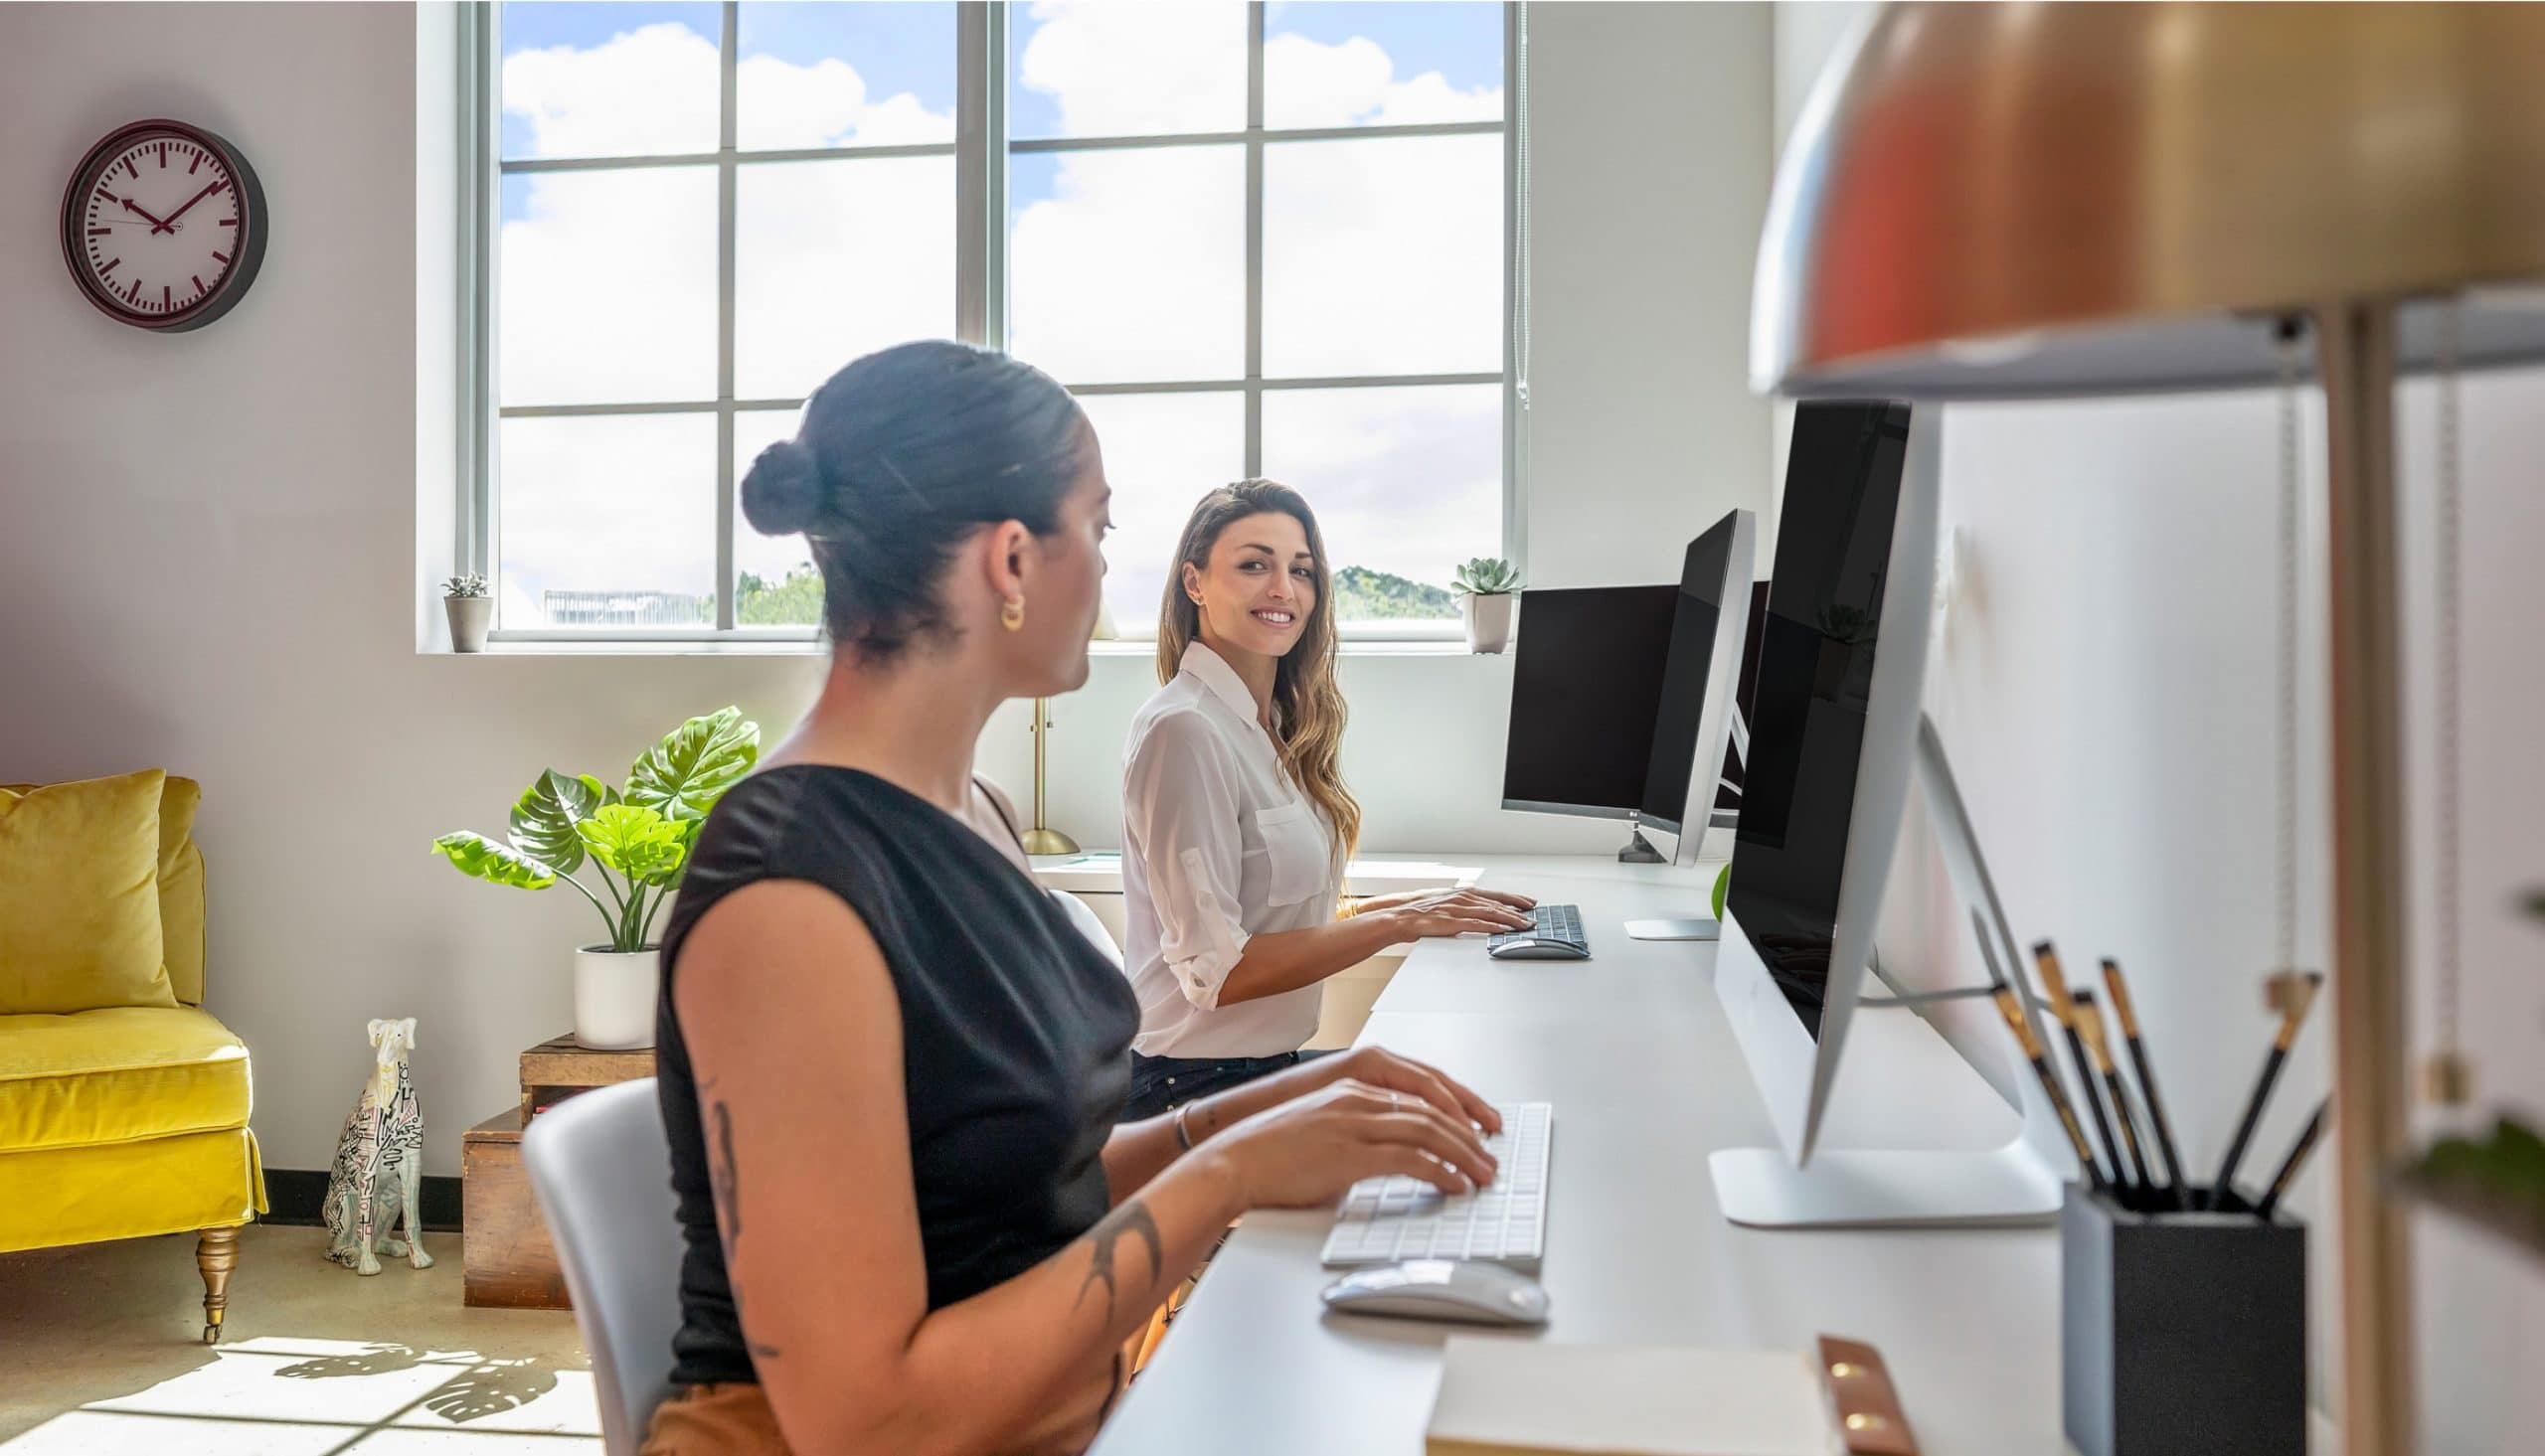 coworking office space for rent in miami fl